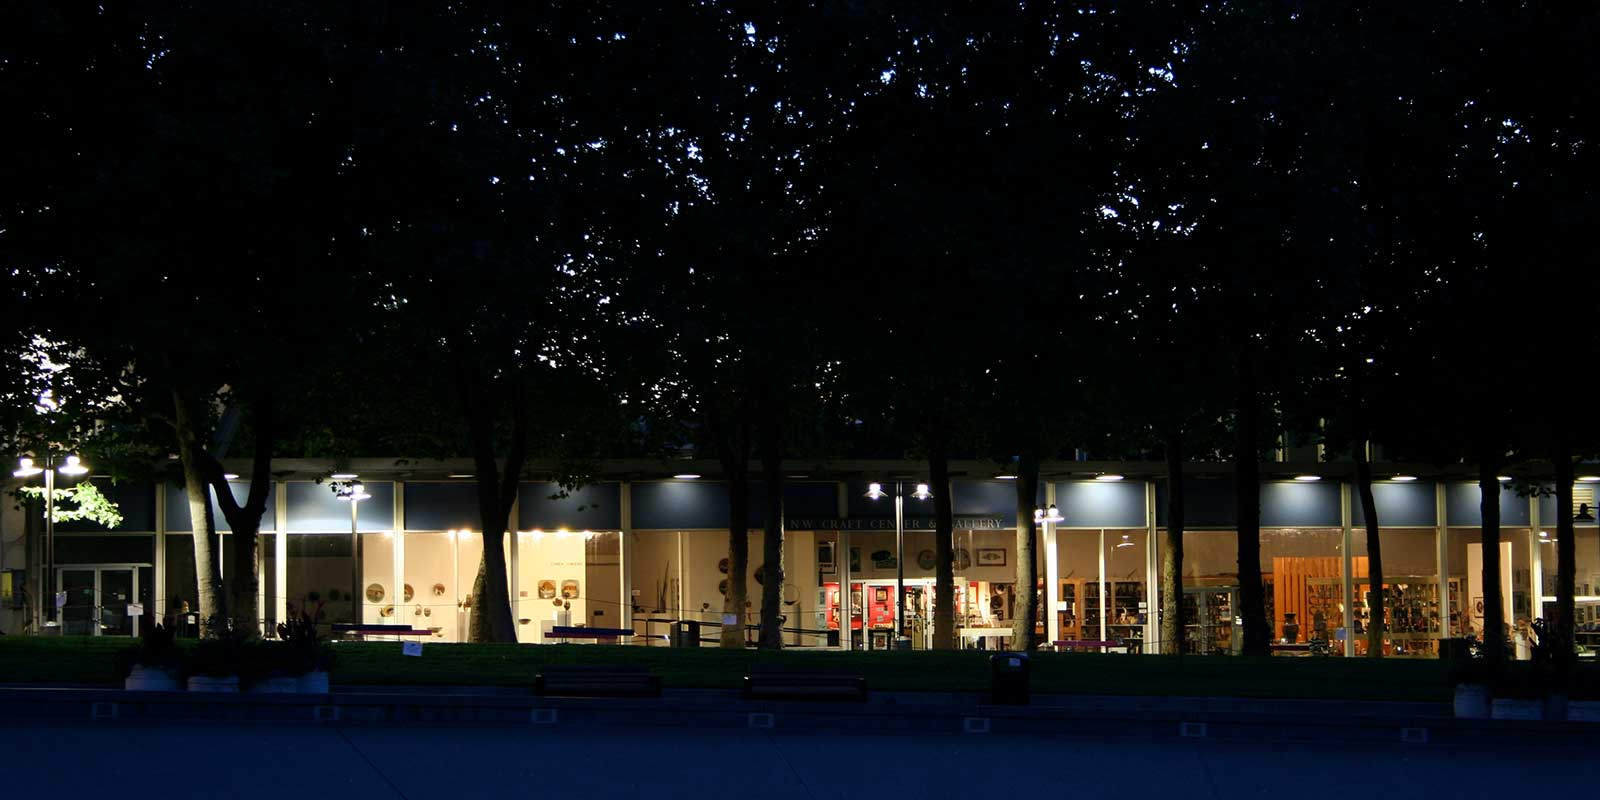 A dimly lit row of windows under trees showing artwork at Seattle Center.